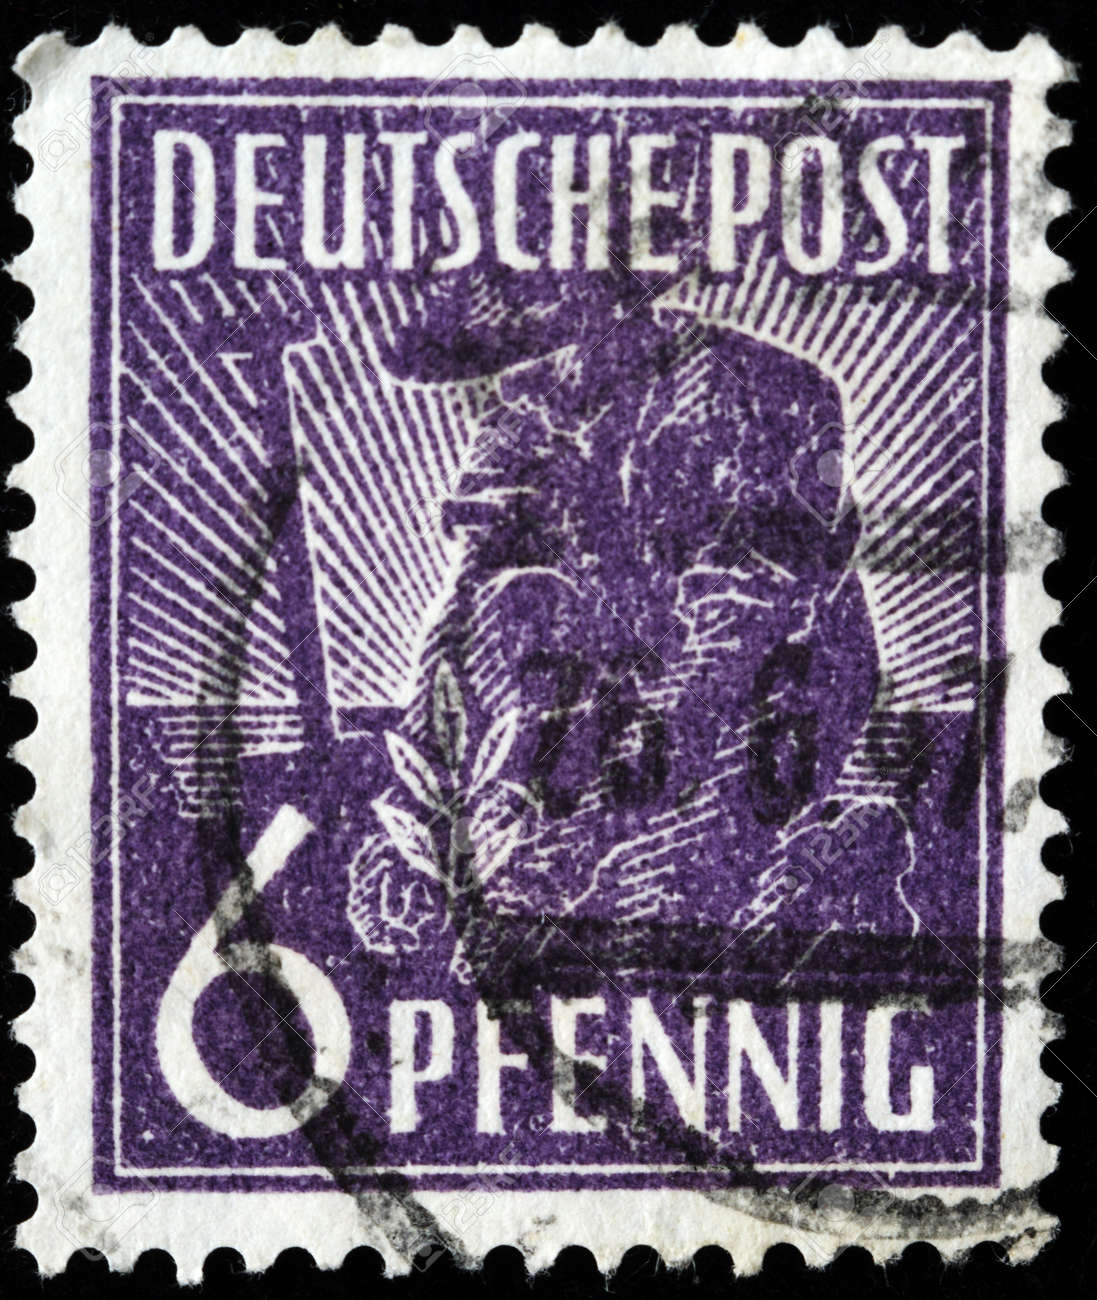 GERMANY - CIRCA 1947: A stamp printed in Germany shows farmer, plant germ, circa 1947 Stock Photo - 8154850